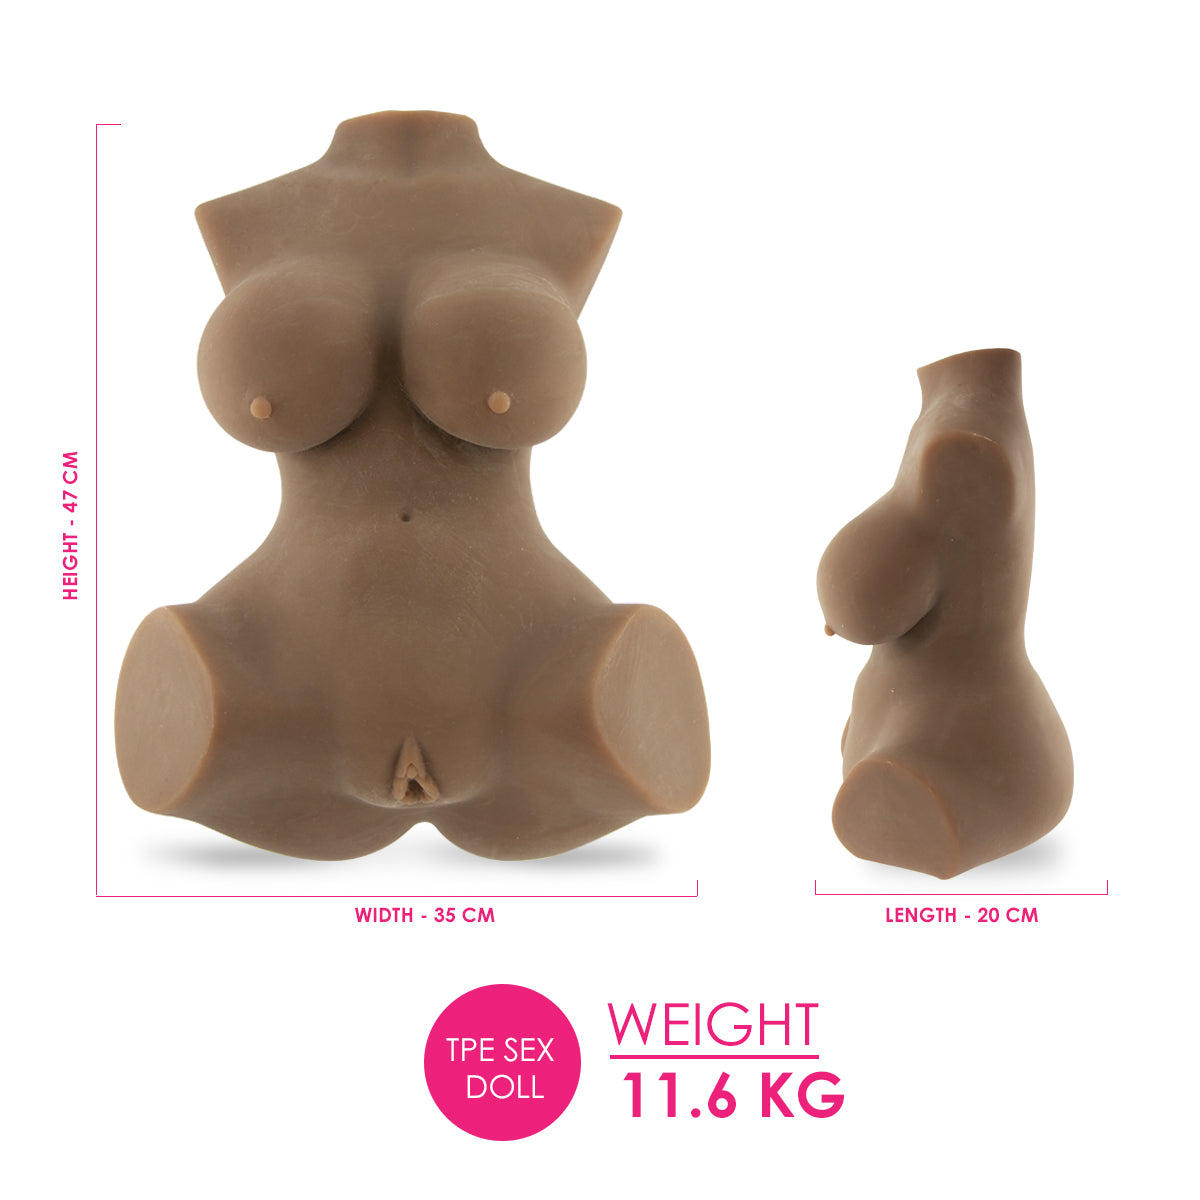 Geiko B Sex Love Doll (Brown) 11.6KG - TPE - 47cm - Brown